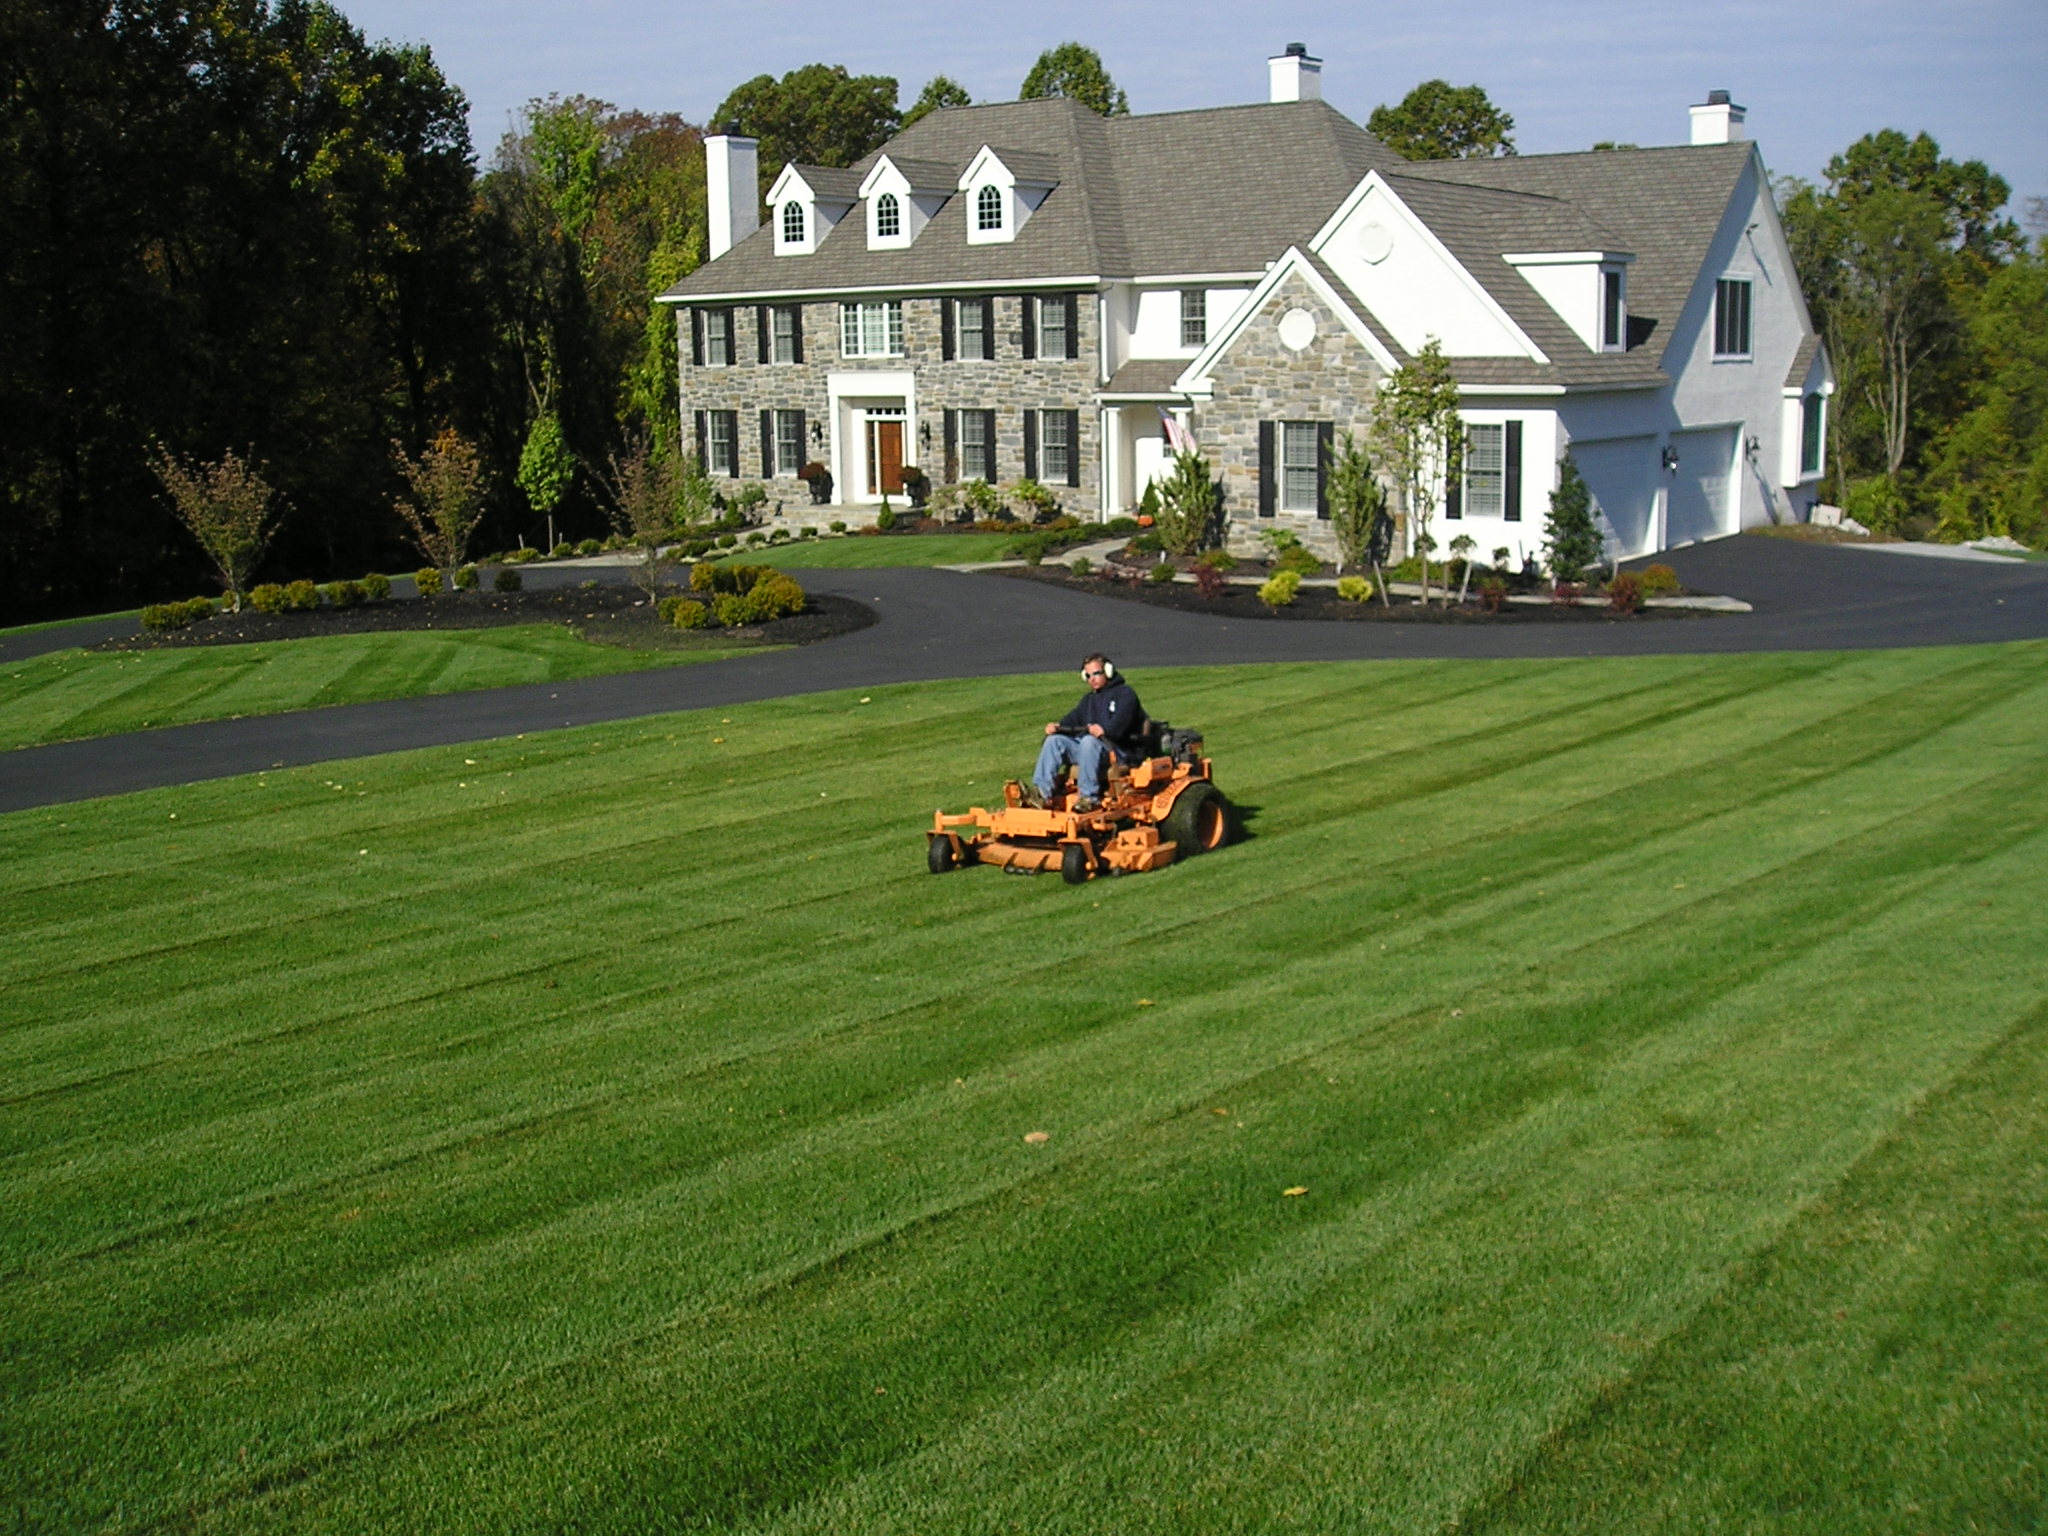 Basil green landscaping professional lawn care company for Lawn and garden services